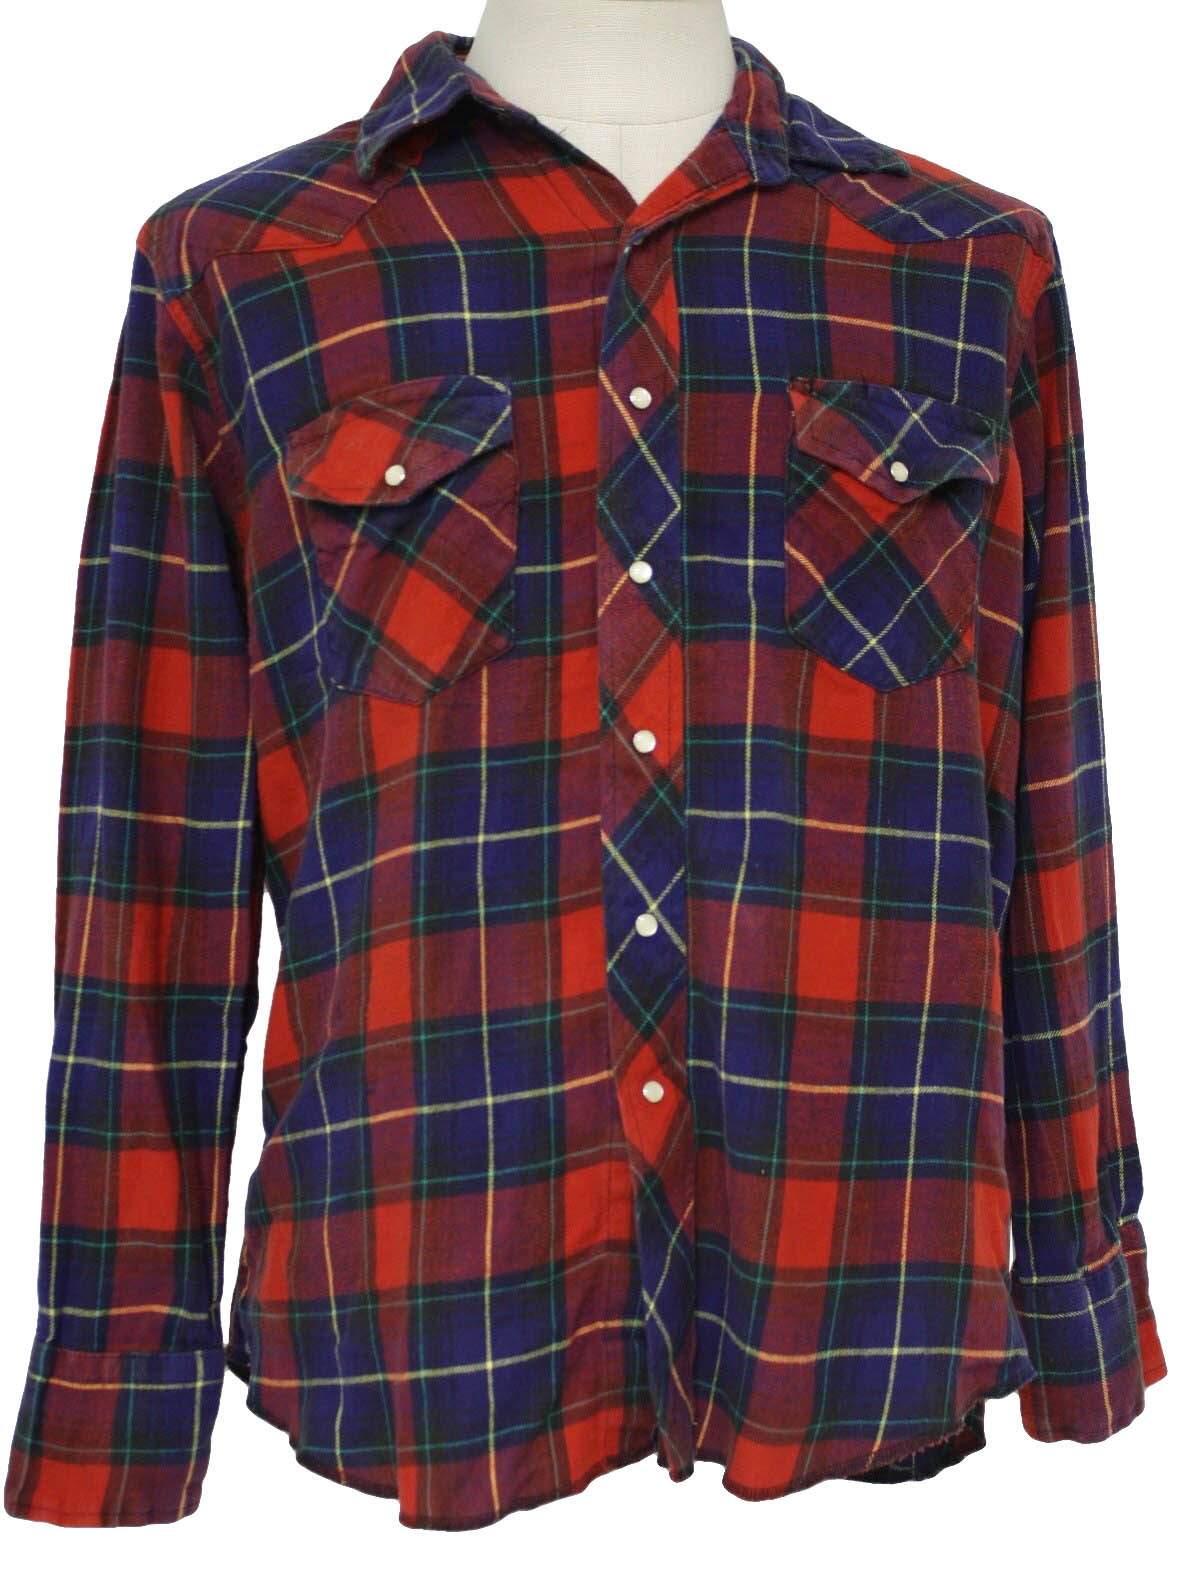 Find great deals on eBay for mens flannel shirt red. Shop with confidence.